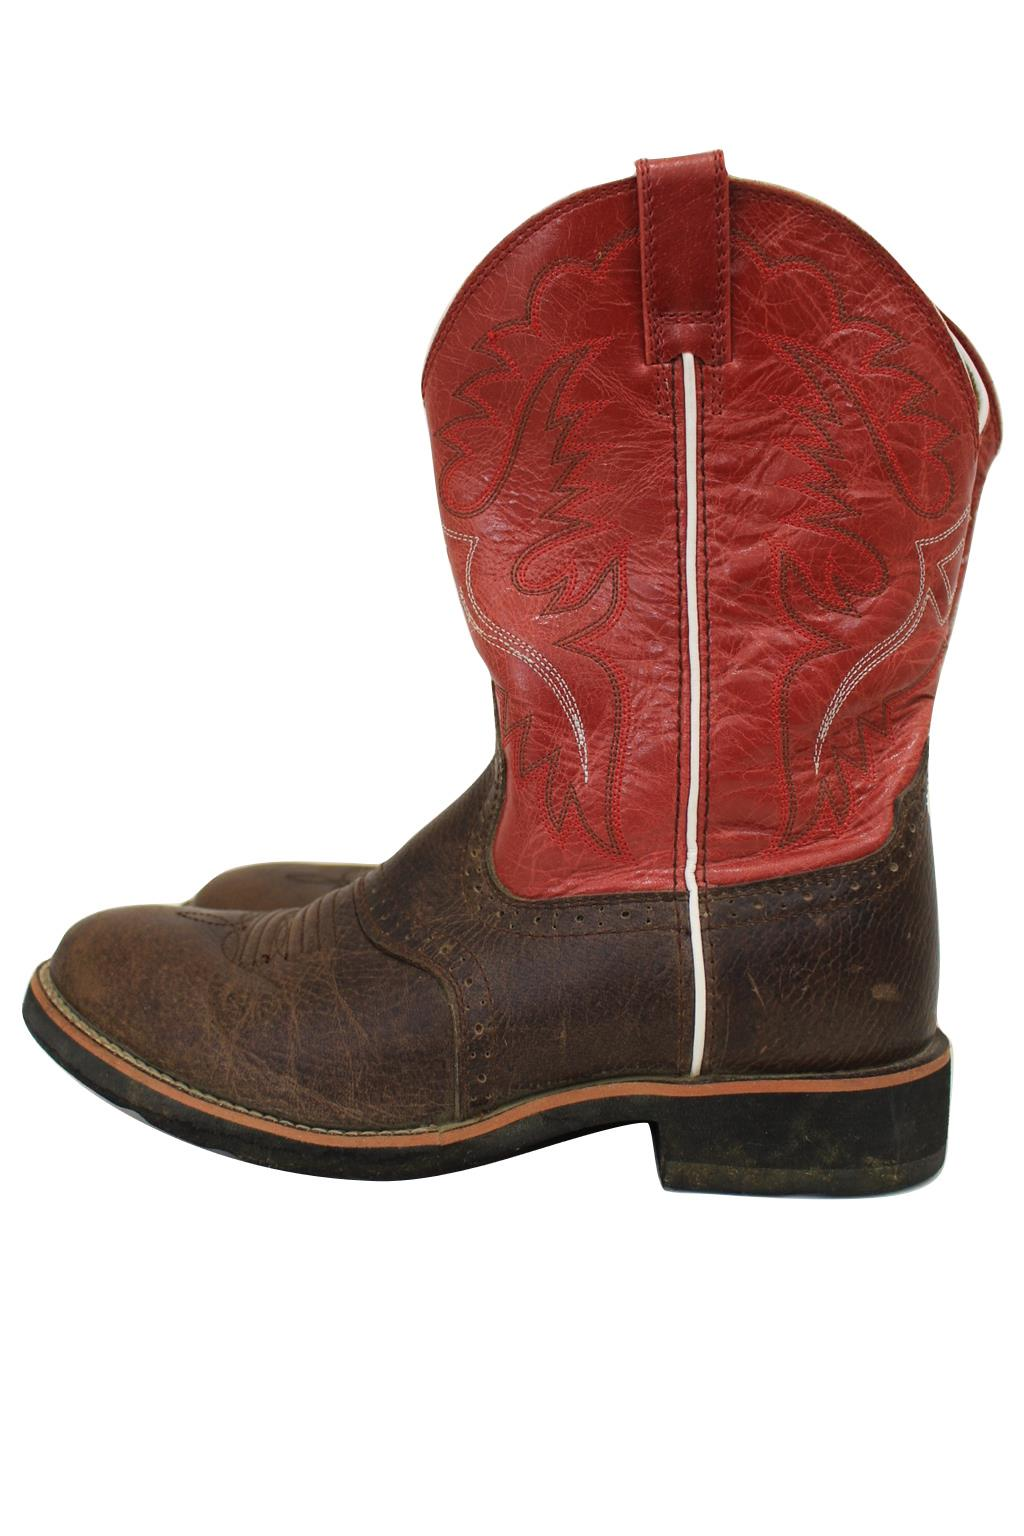 Brown & Red Leather Western Cowboy Boots 4Lr